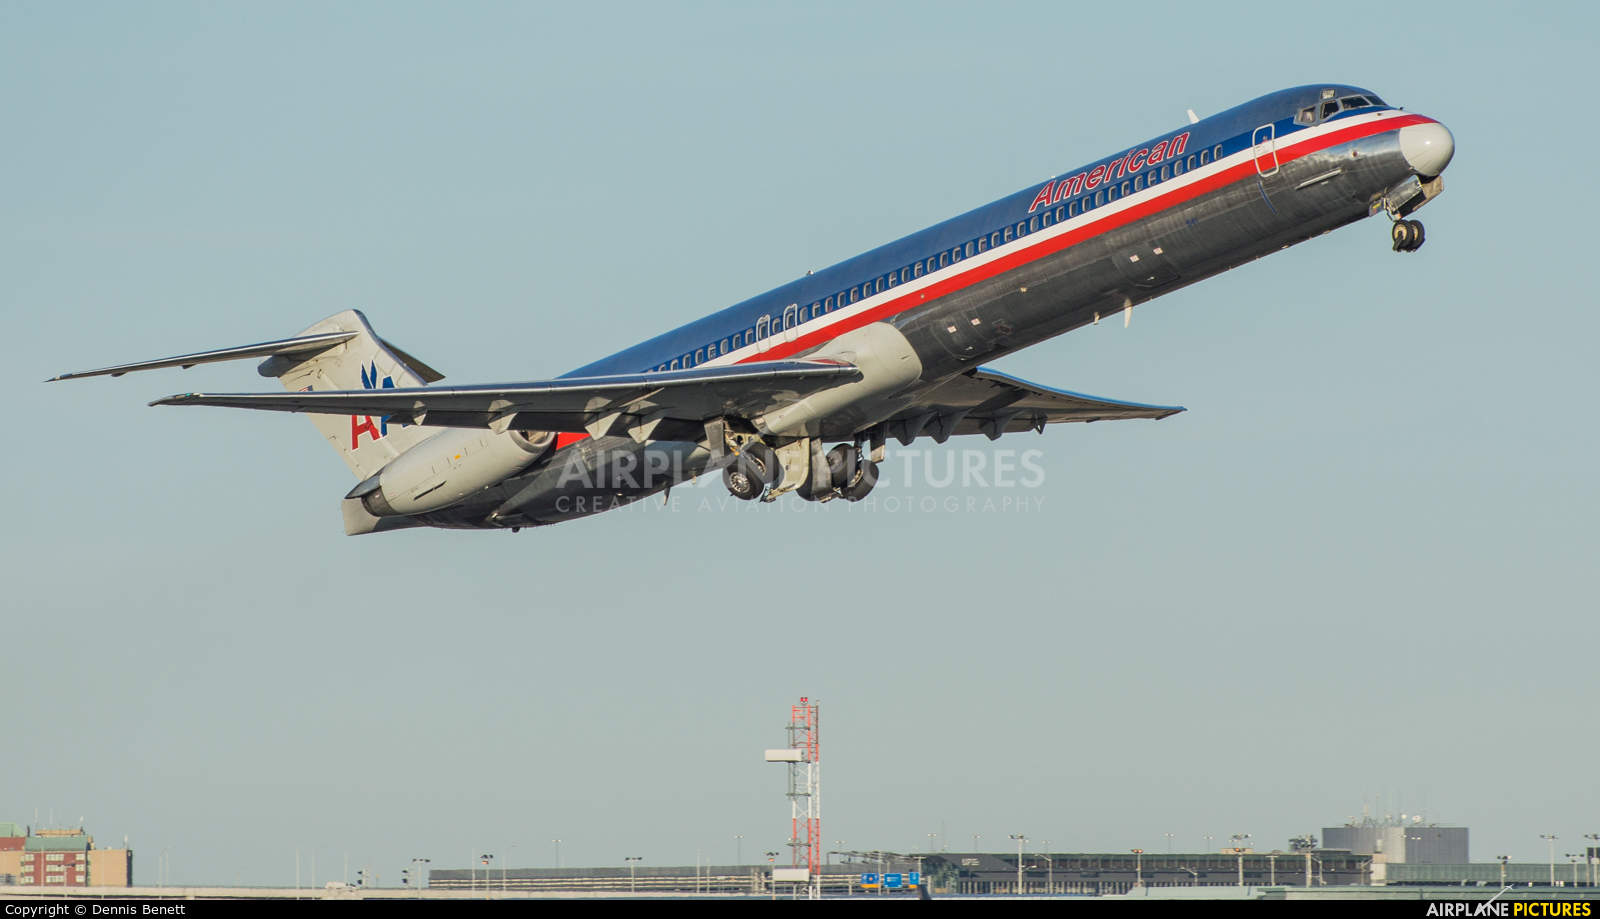 13 Years old teen groped on American Airlines flight